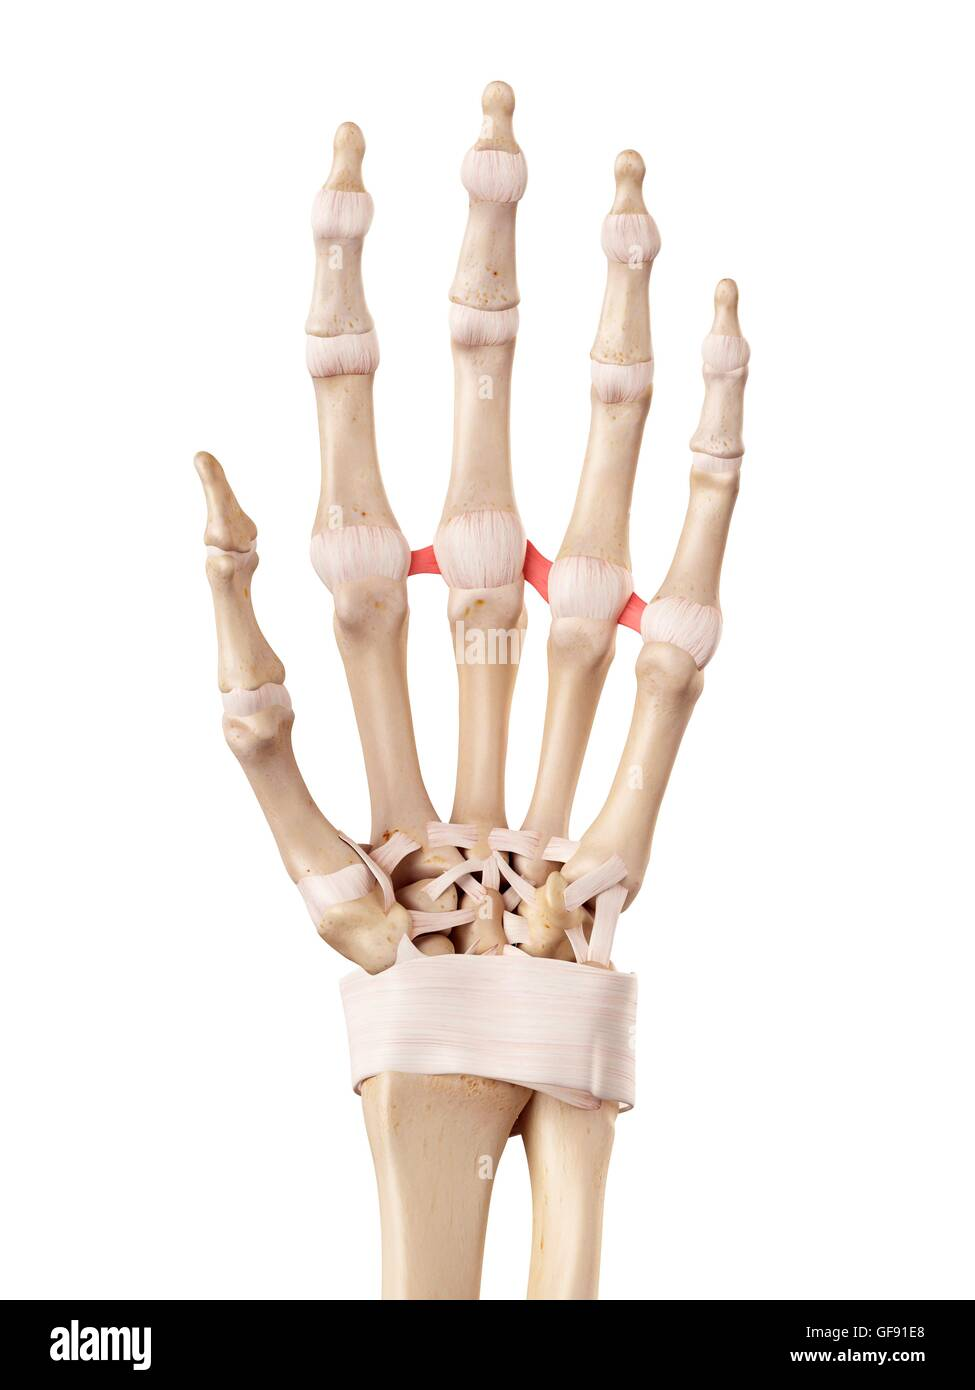 Dorsal Intercarpal Ligaments Stock Photos & Dorsal Intercarpal ...